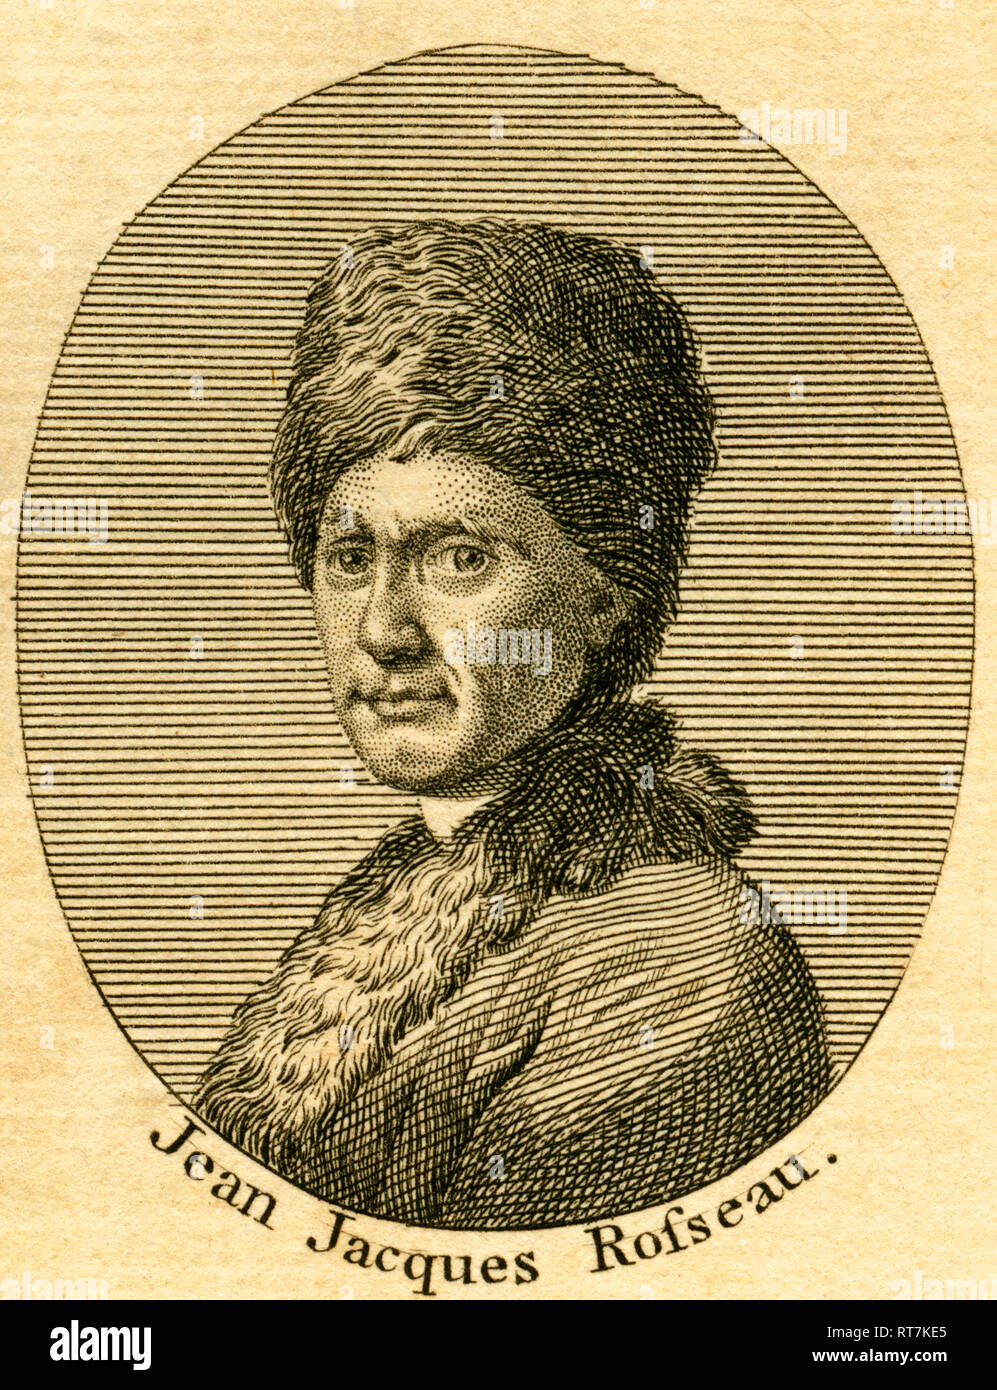 Jean Jacques Rousseau, Genevan / French philosopher and writer, 18th century, etching from an book of the 18th century, about 1766., Additional-Rights-Clearance-Info-Not-Available - Stock Image